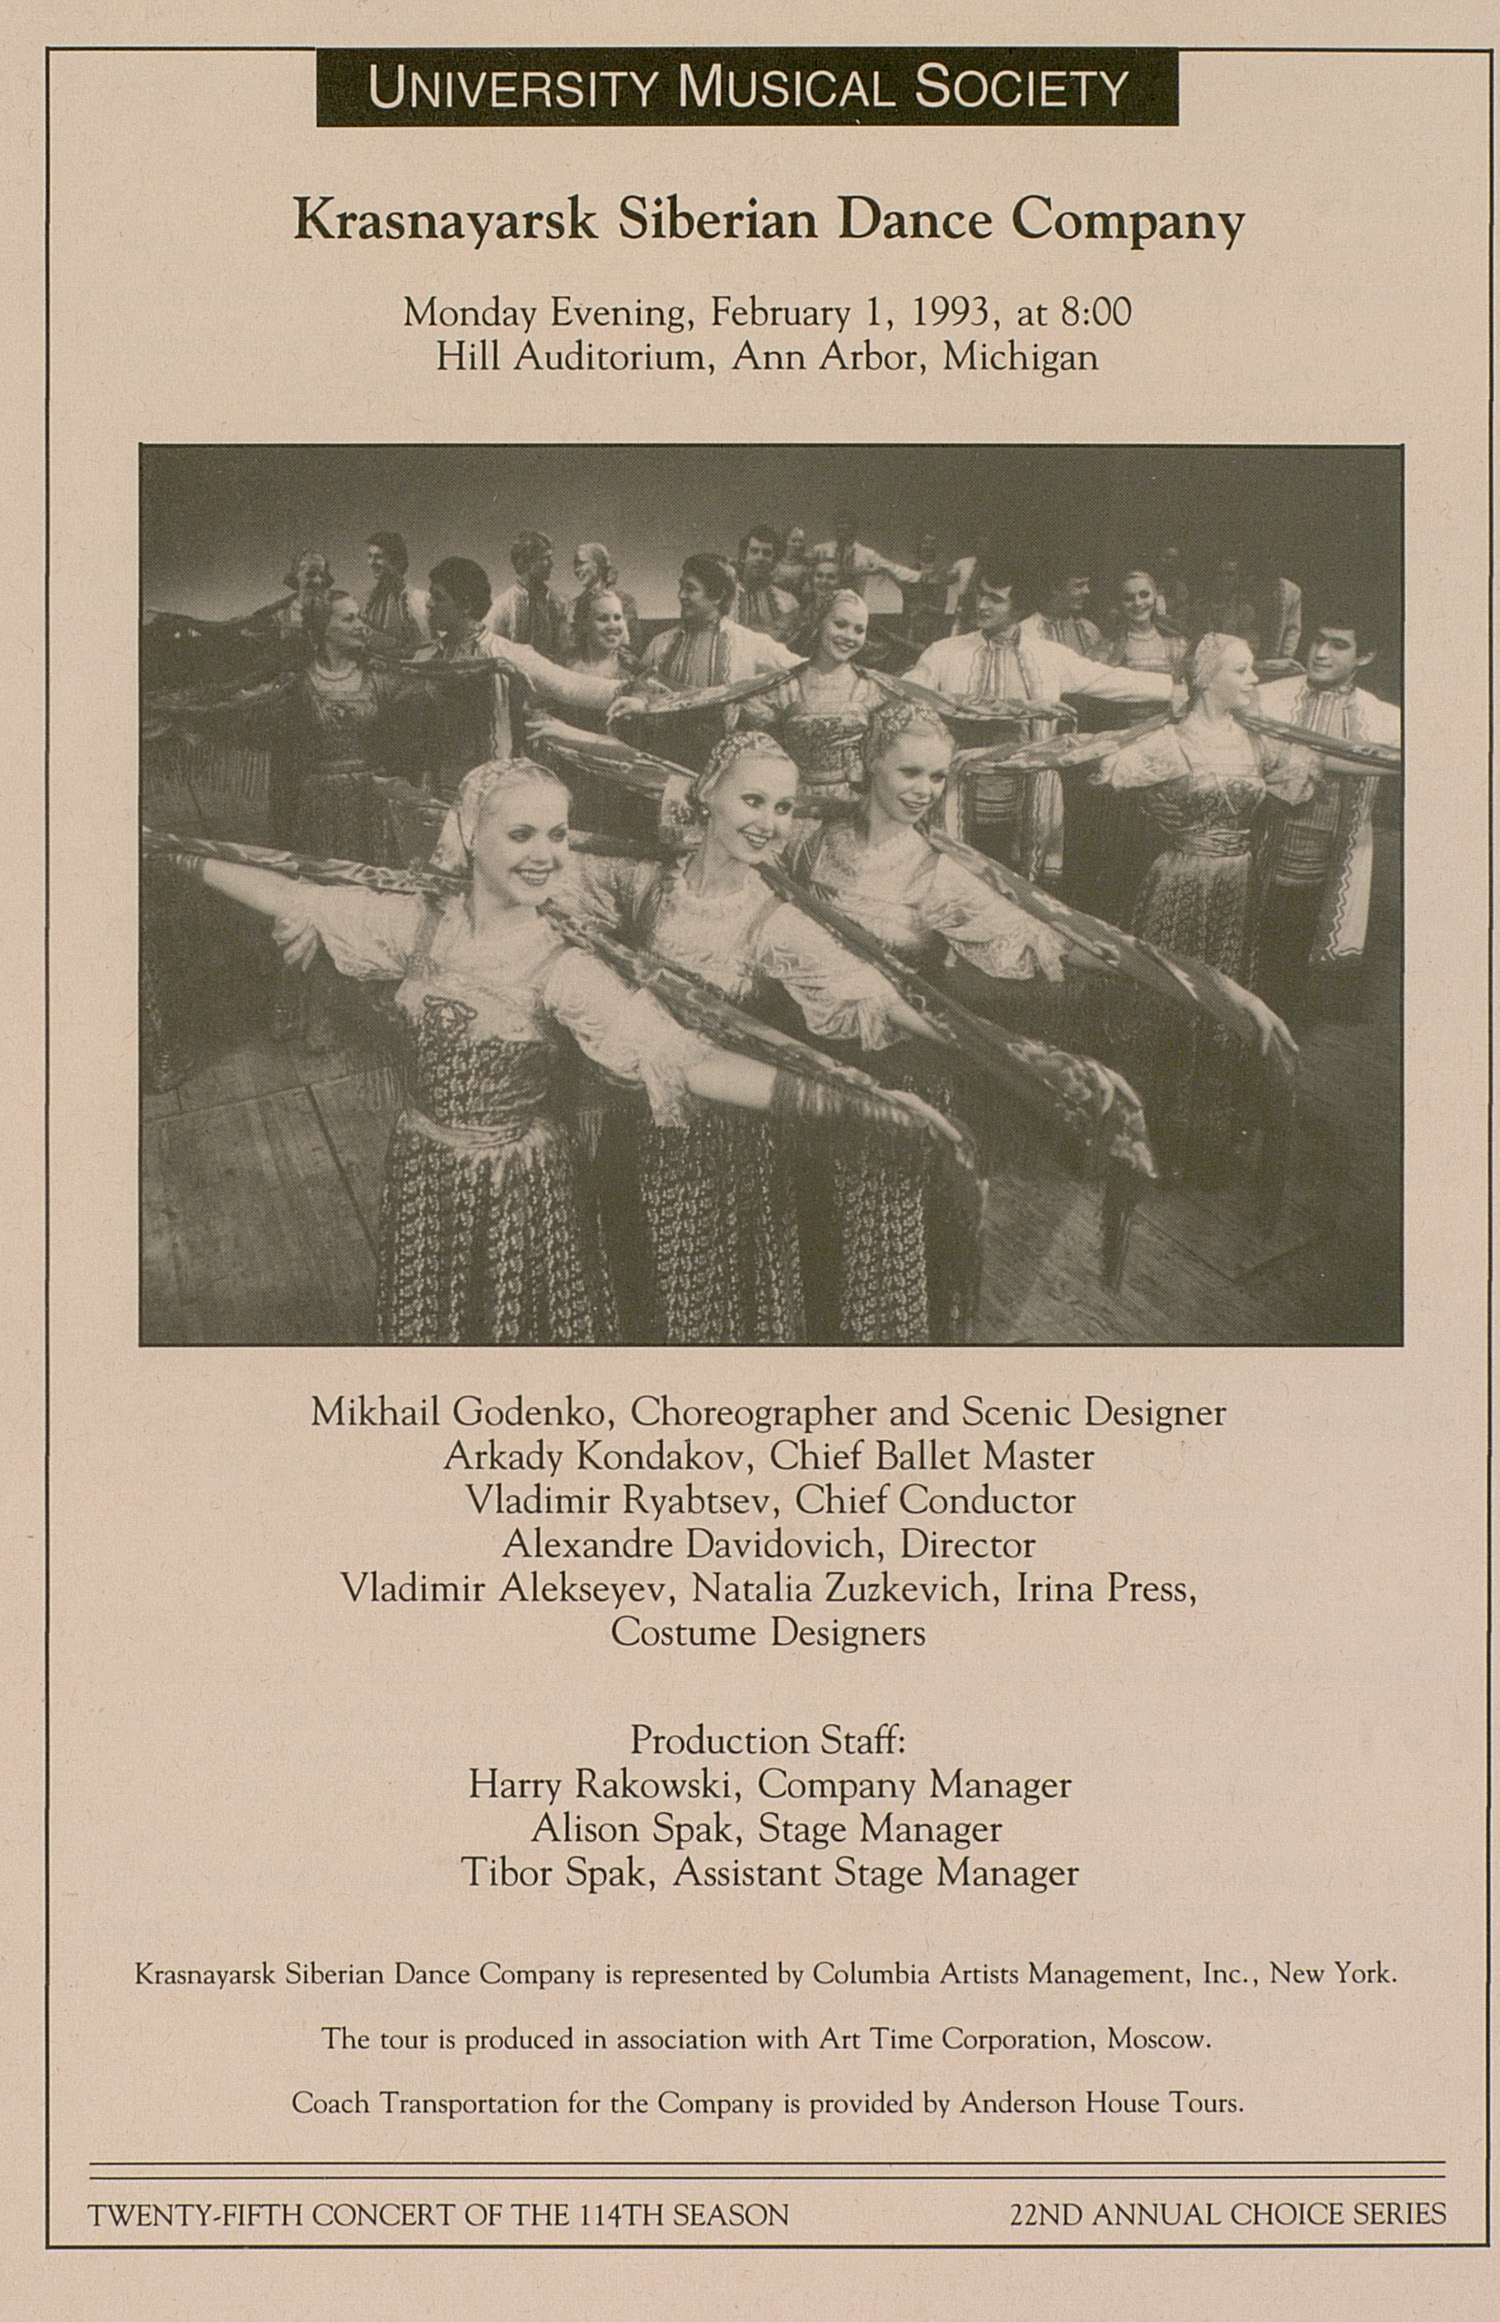 UMS Concert Program, February 1, 1993: University Musical Society -- Krasnayarsk Siberian Dance Company image